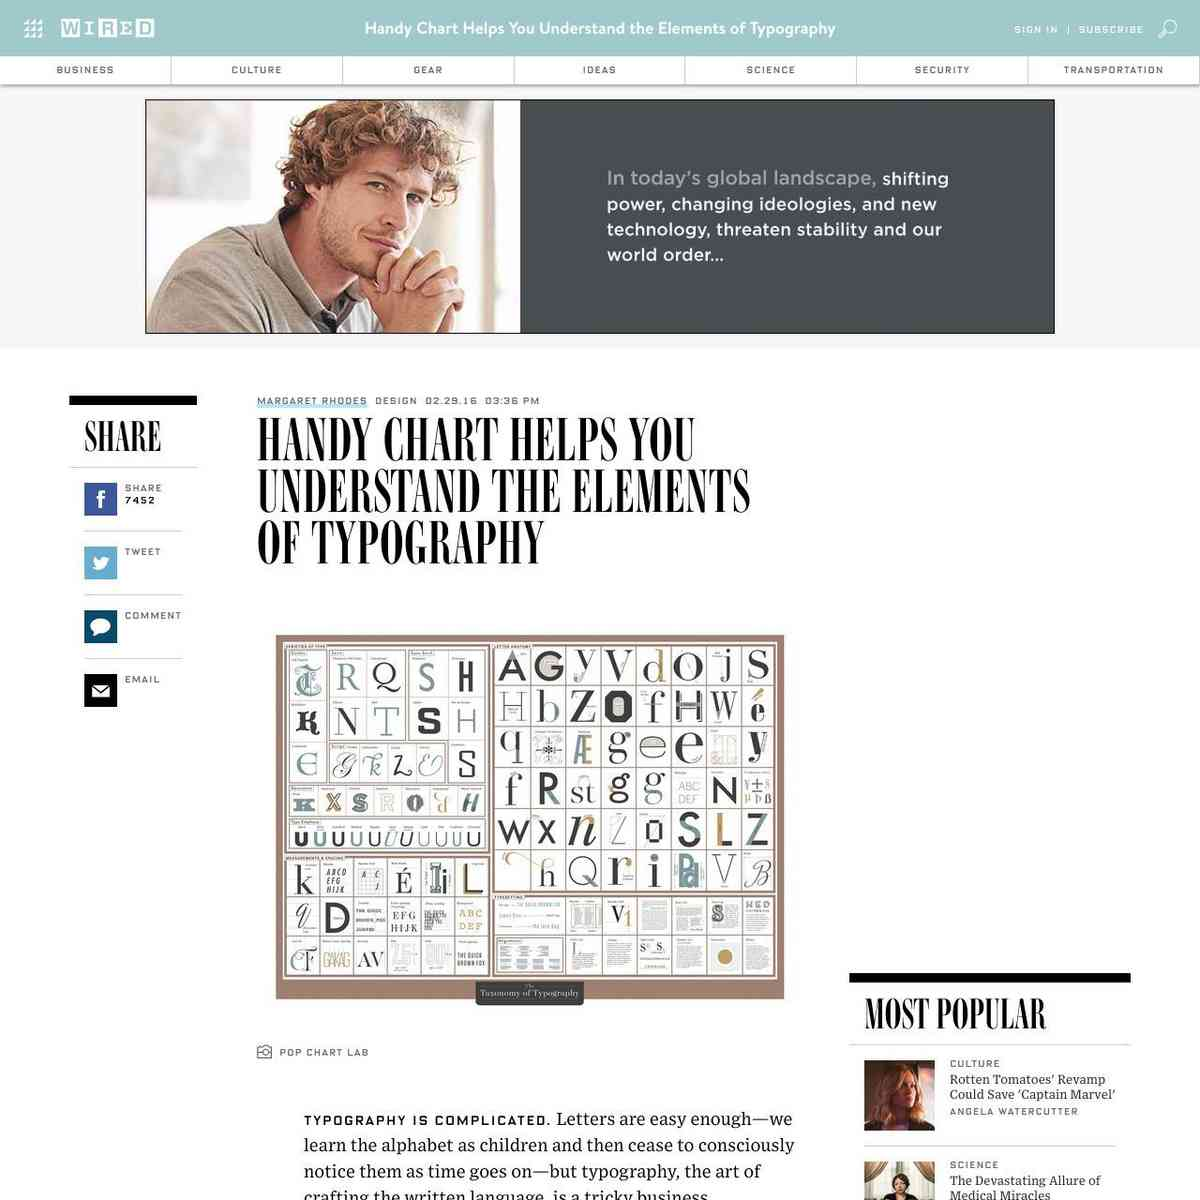 Handy Chart Helps You Understand the Elements of Typography | WIRED